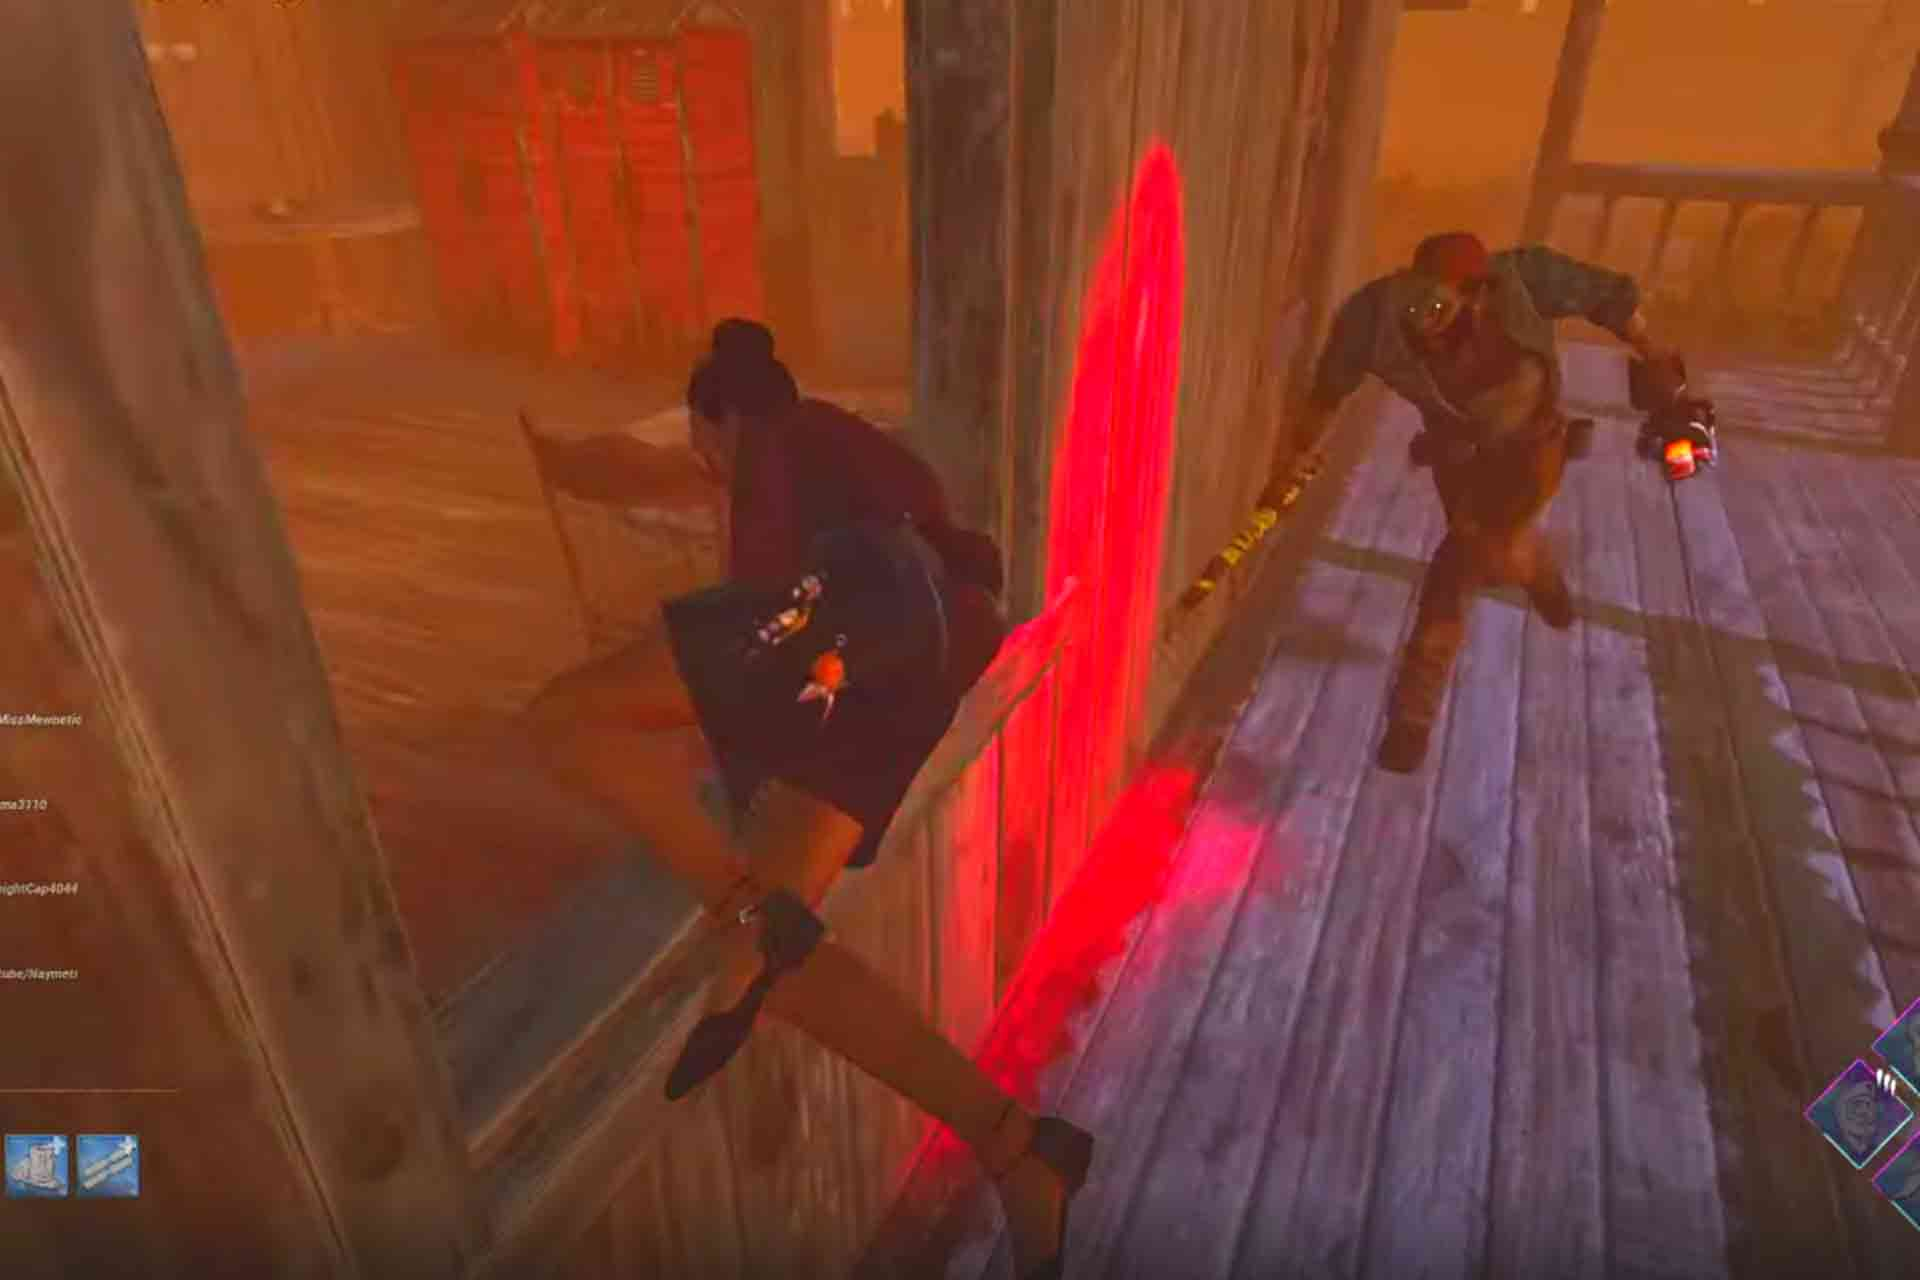 Vaulting windows is a way to escape the killer in Dead by Daylight game.